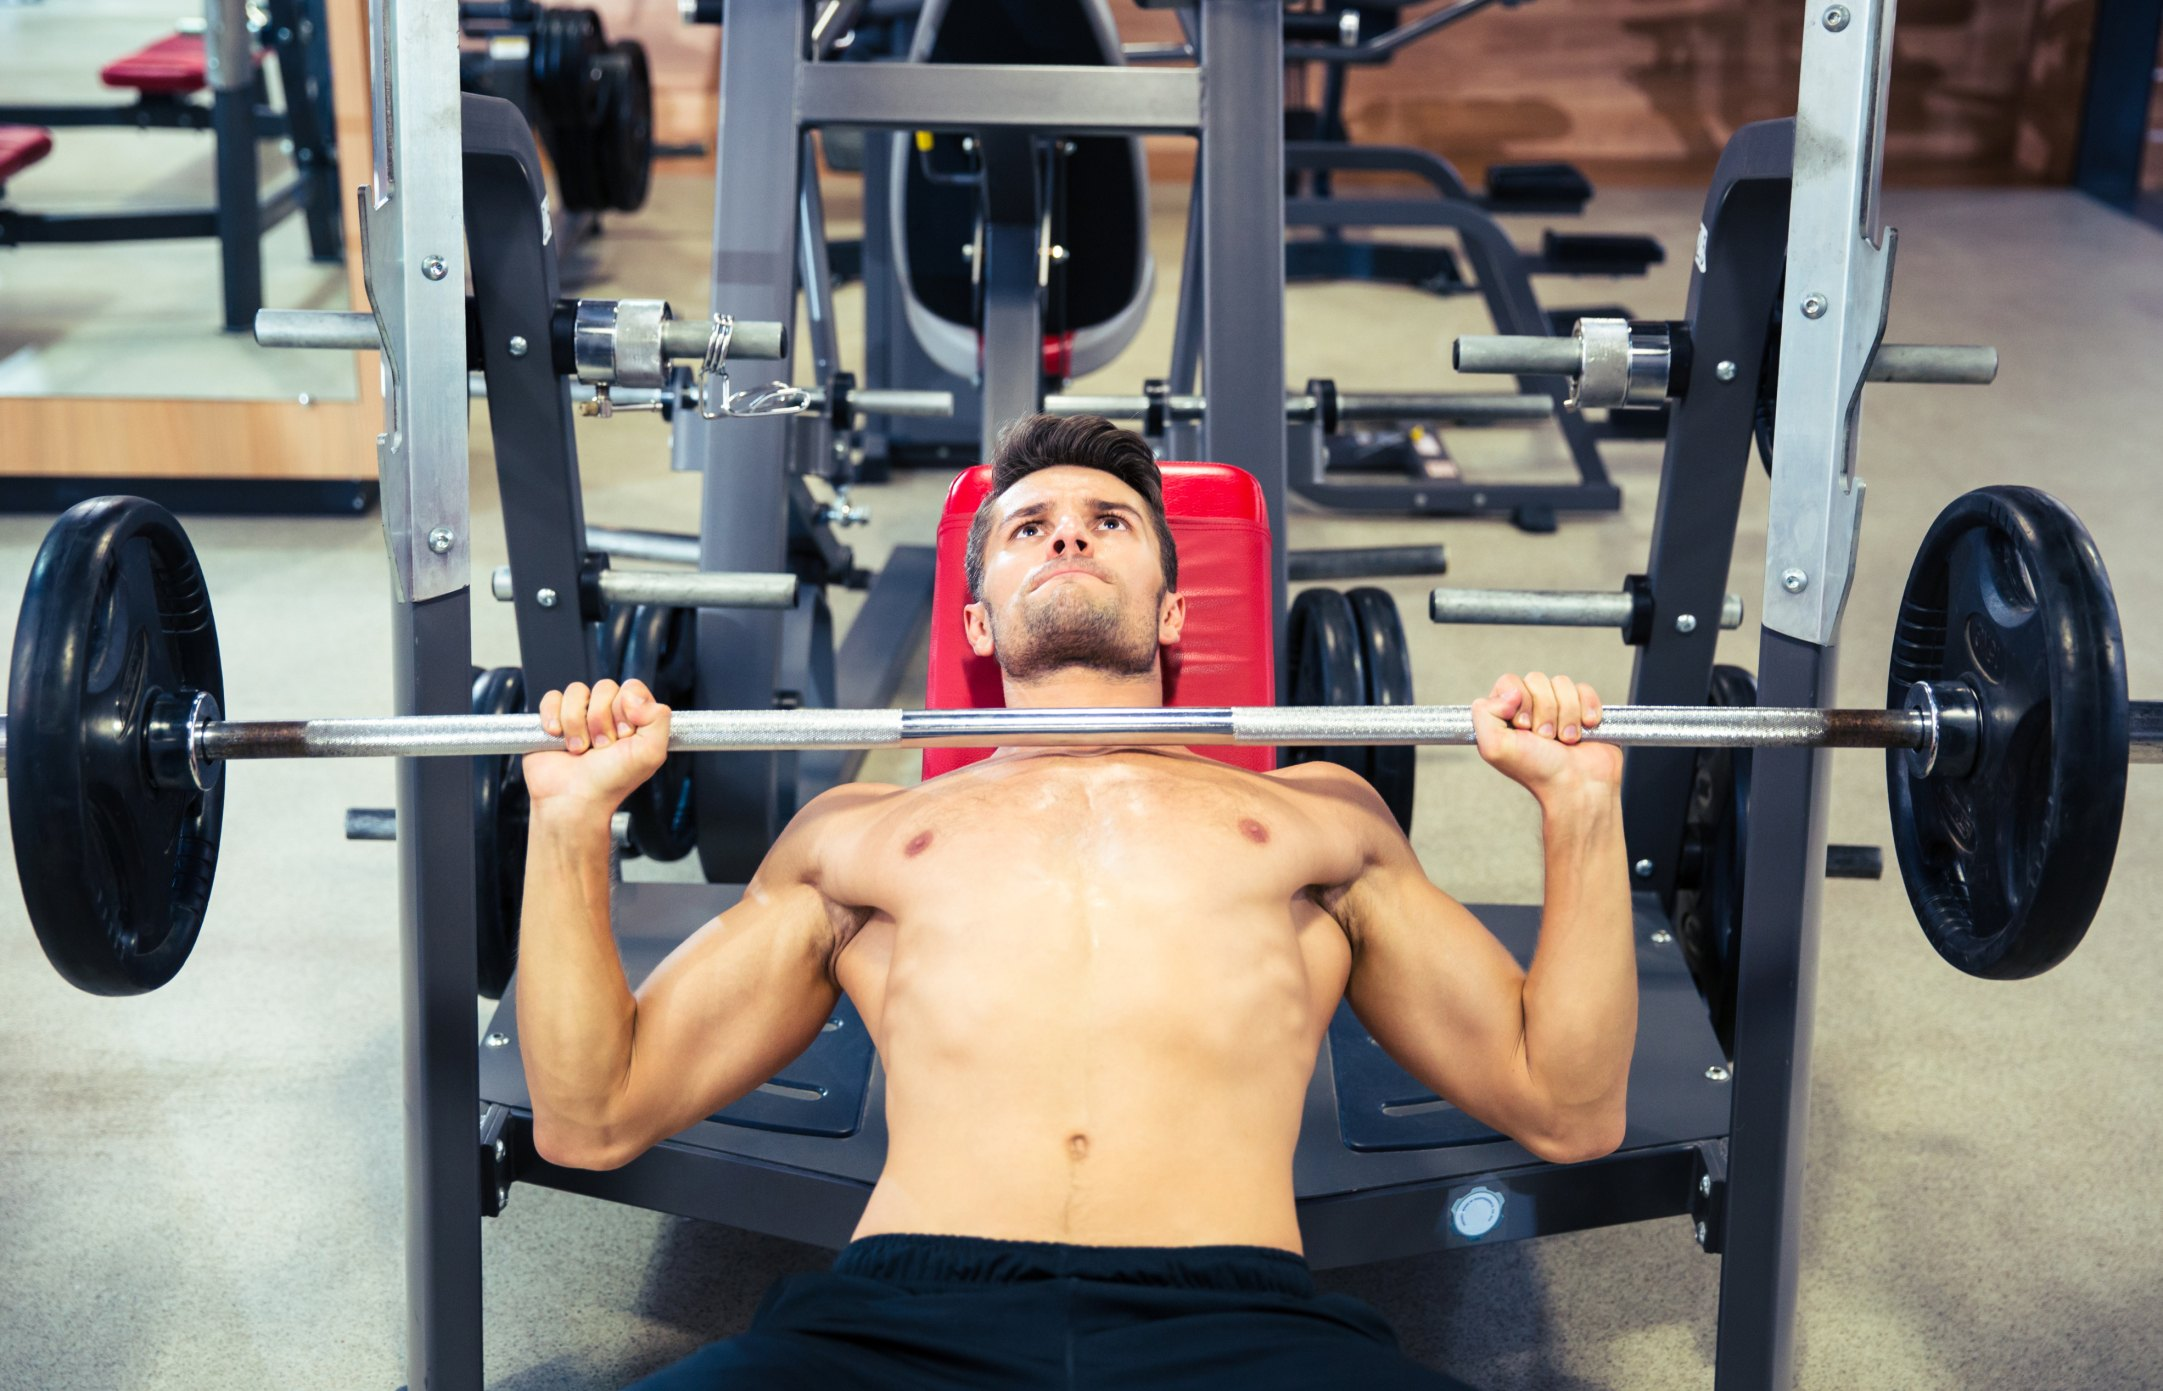 What Weight-Lifting Exercise Burns the Most Fat?